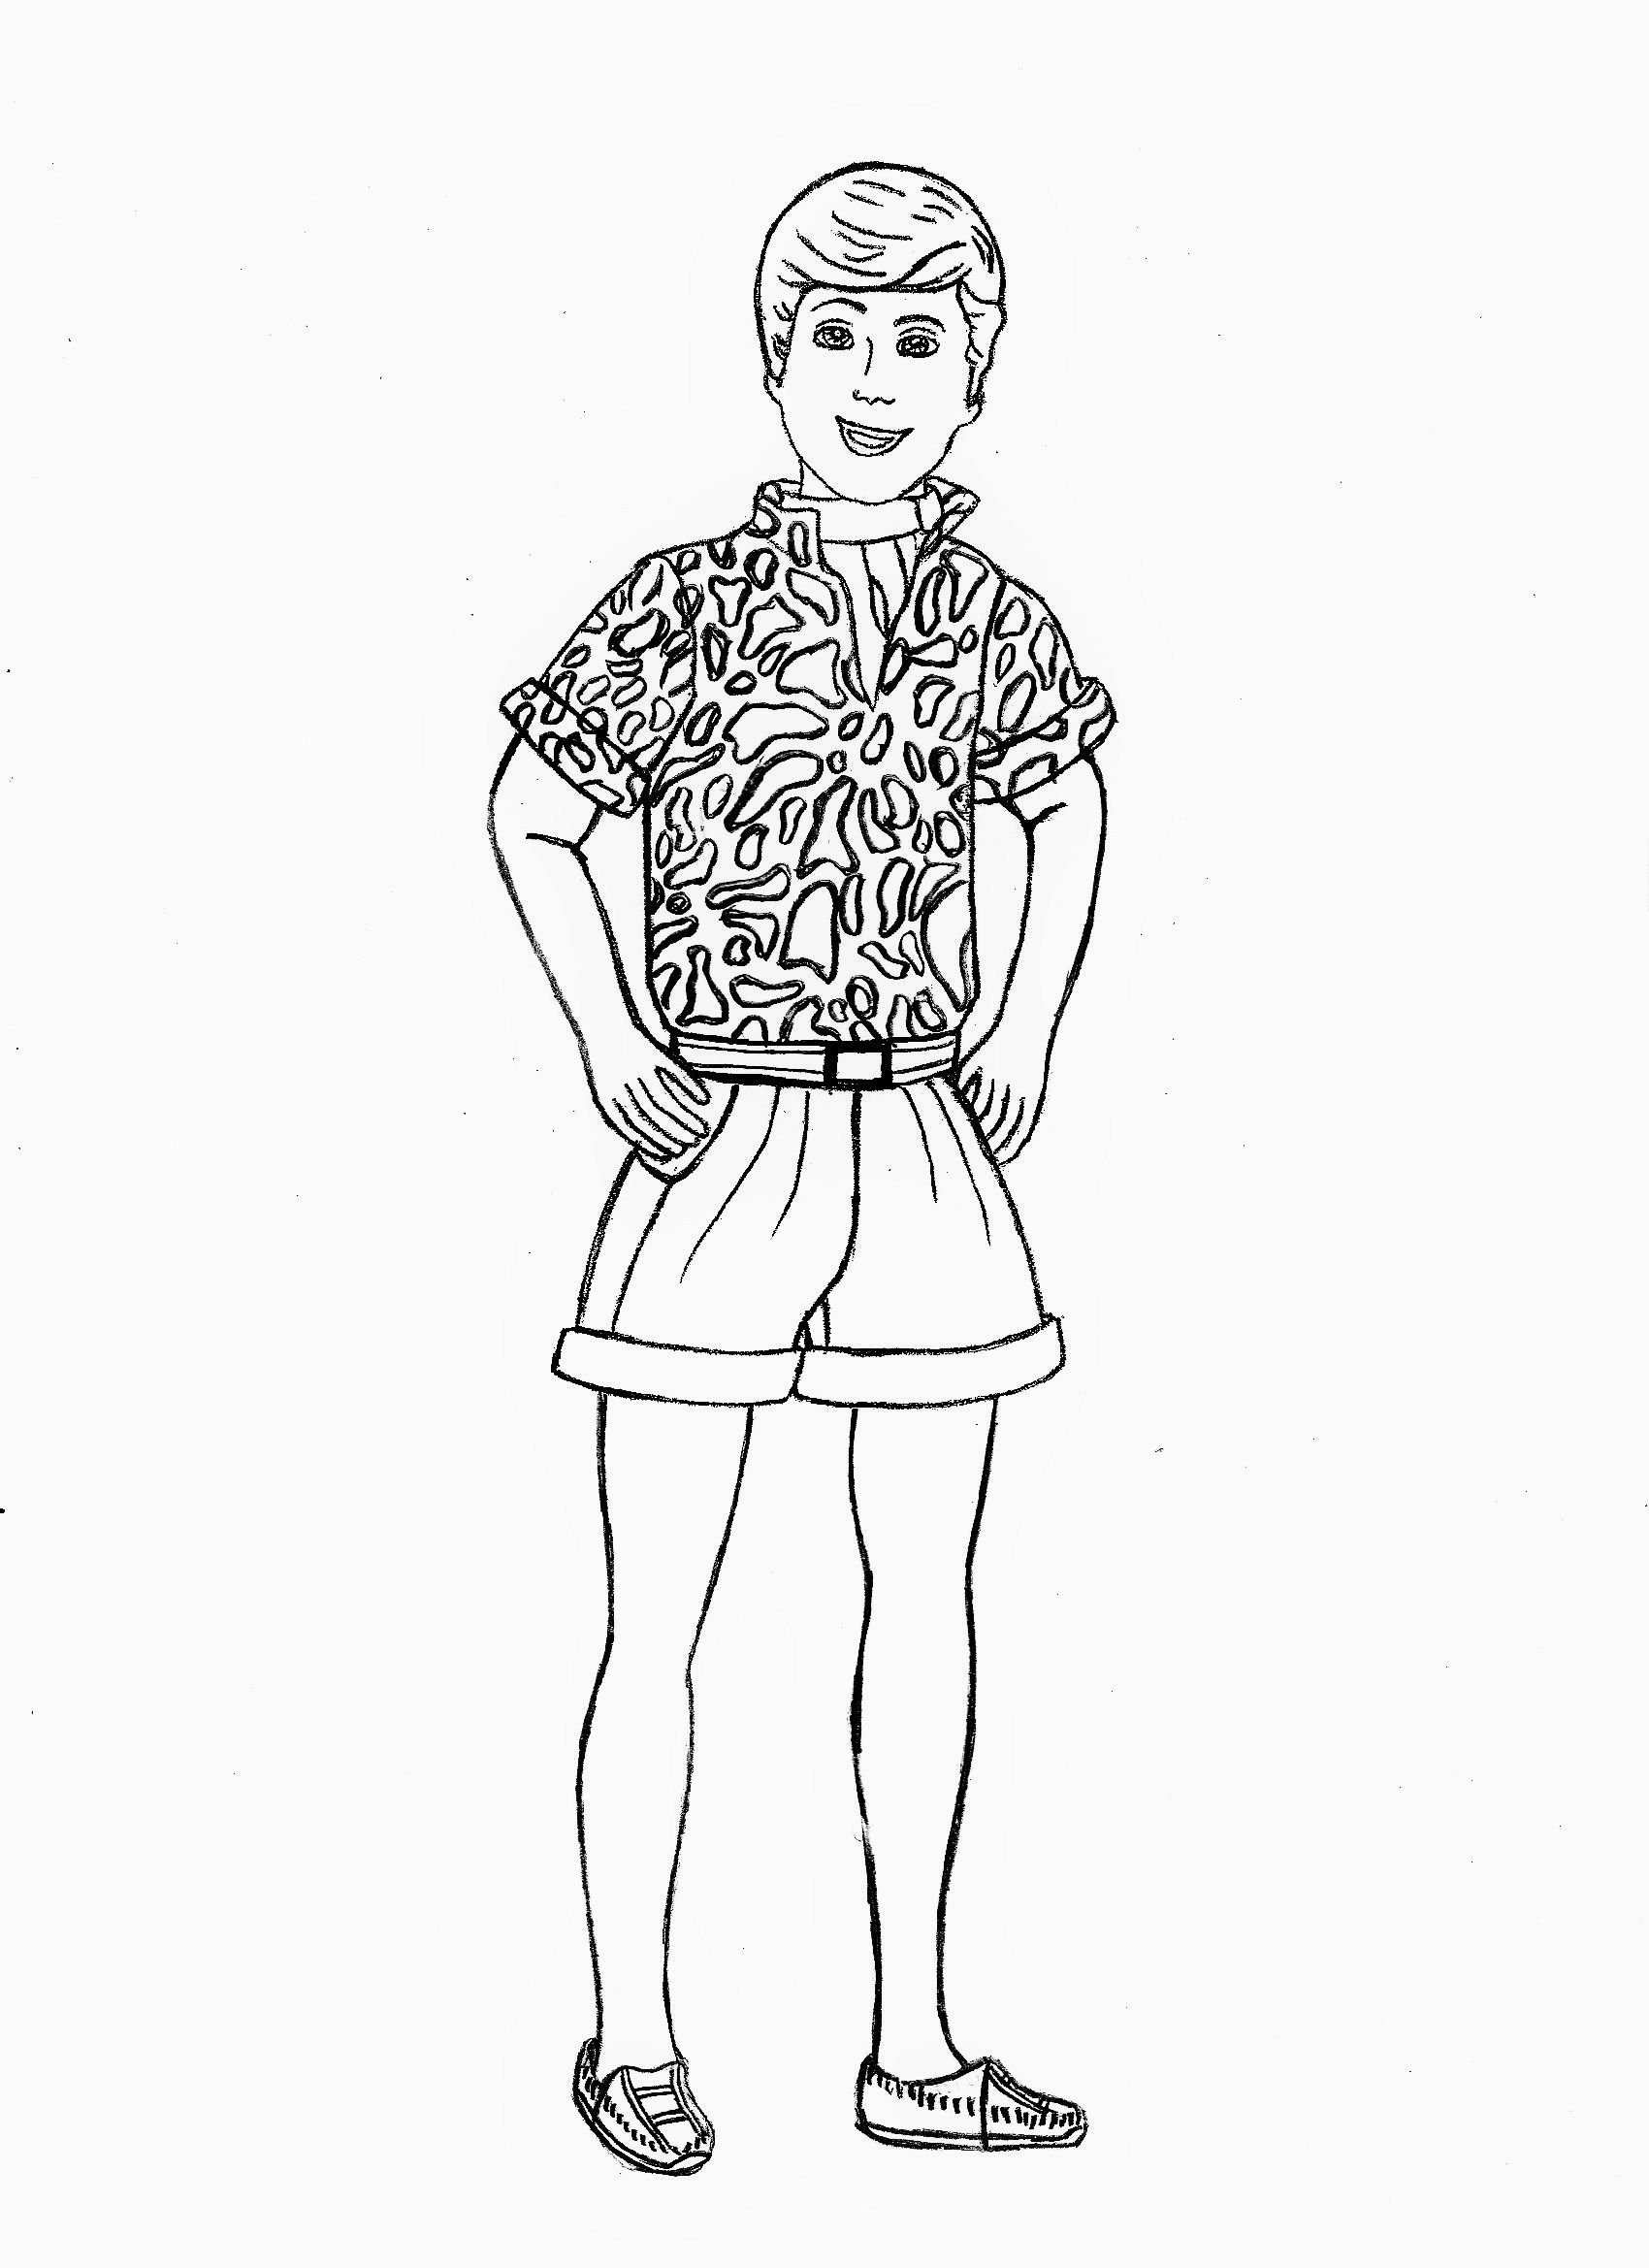 barbie and ken coloring sheets barbie and ken coloring pages getcoloringpagescom coloring and ken barbie sheets